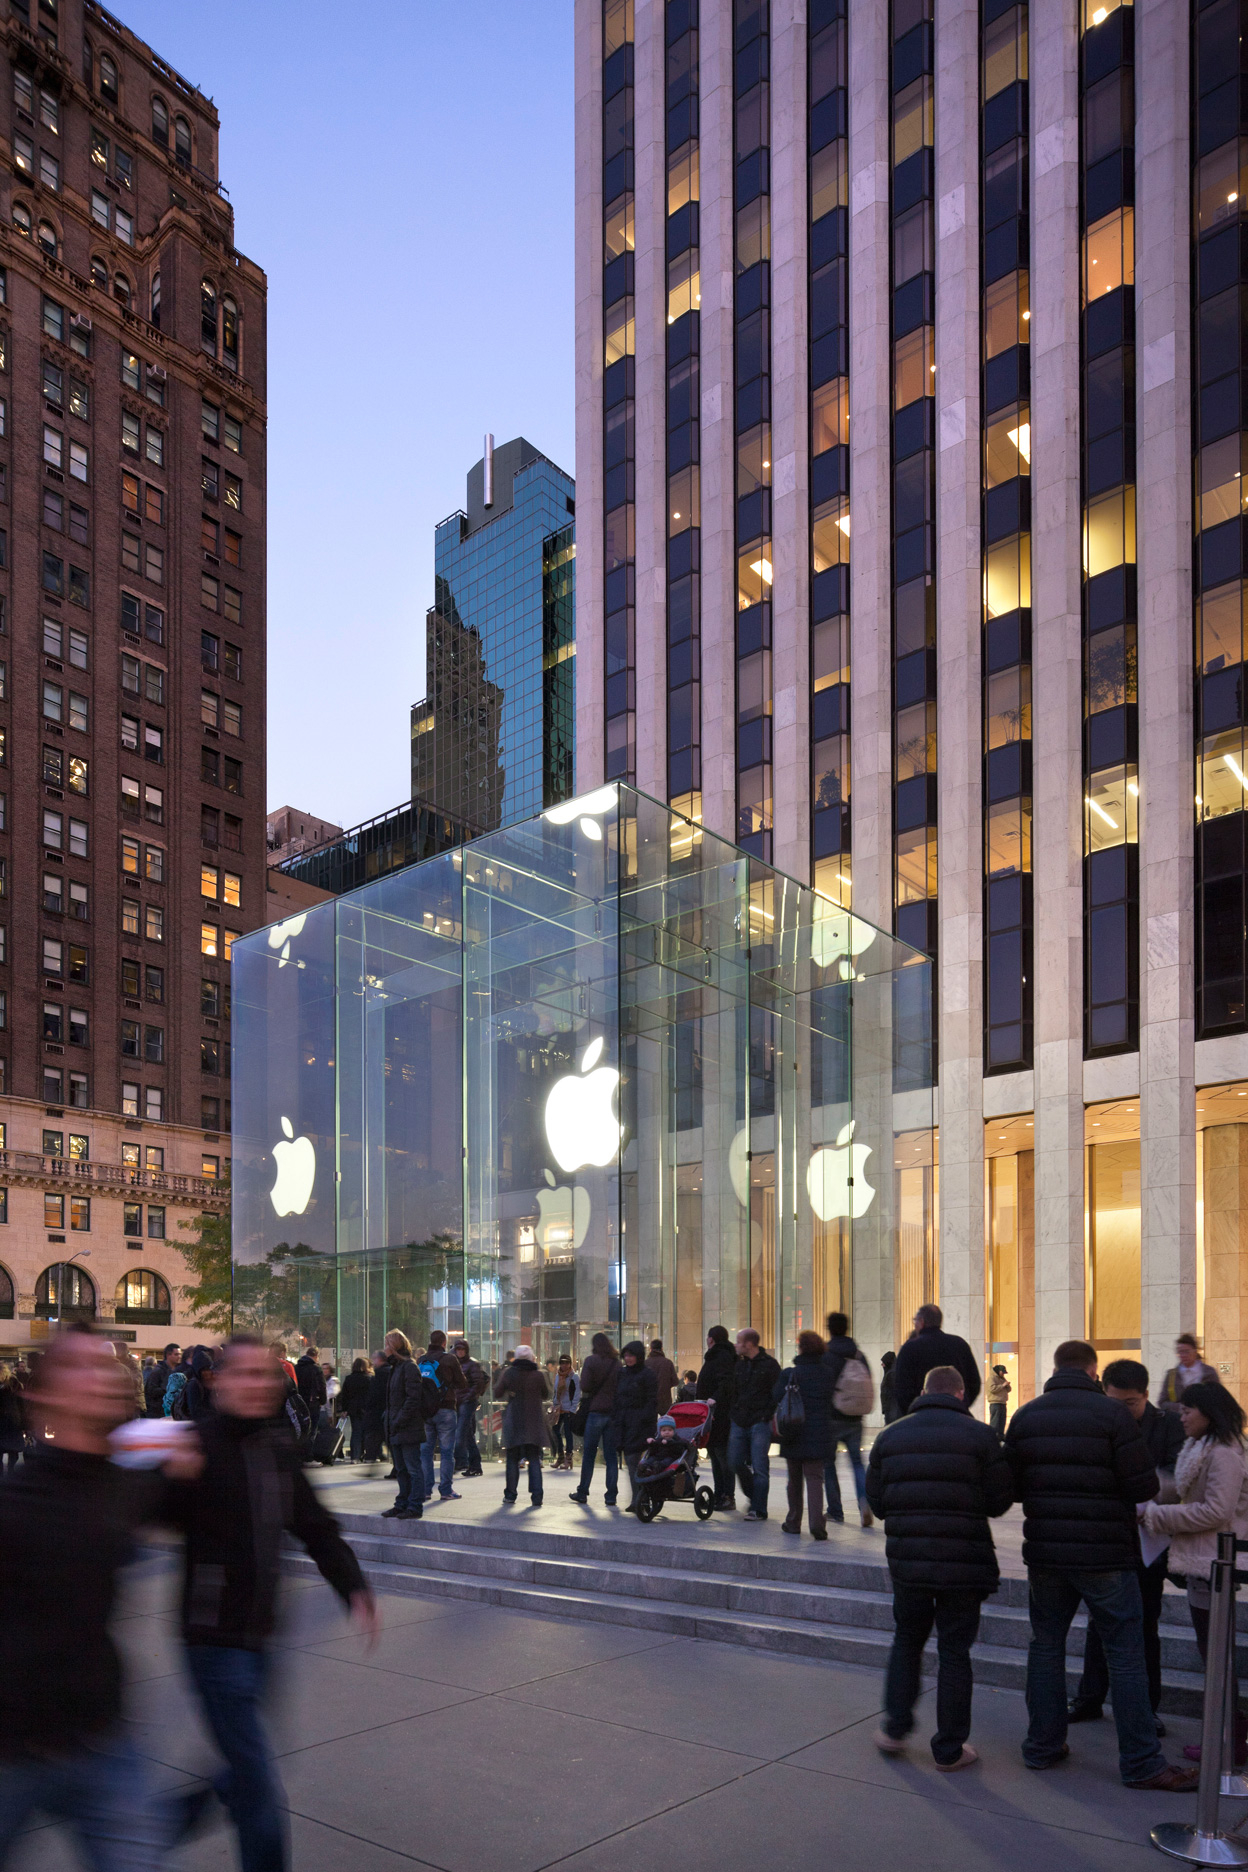 Apple-Fifth-Ave-photo-by-Peter-Aaron,-Esto-Photographics